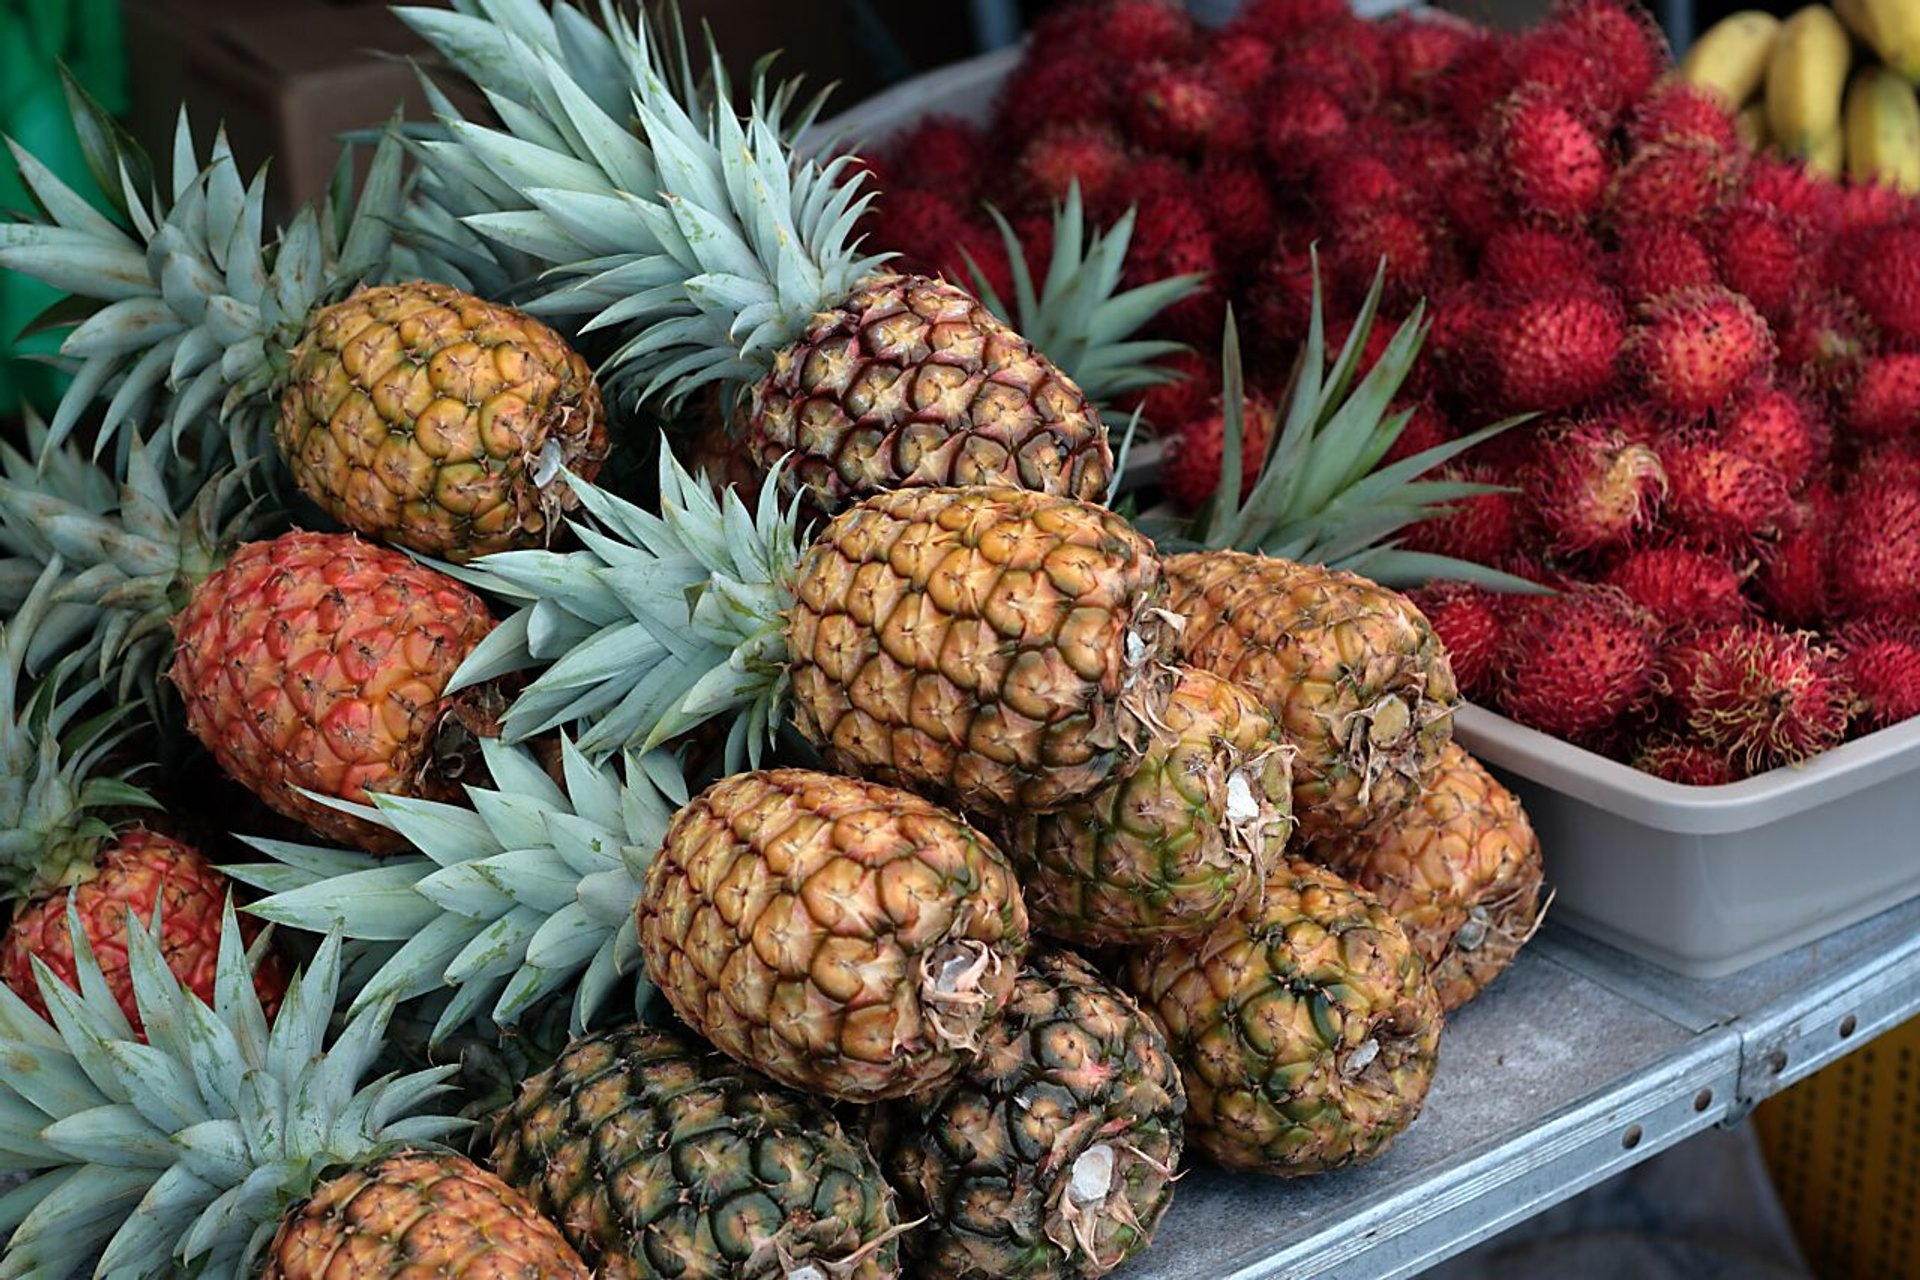 Pineapple in Hawaii 2019 - Best Time